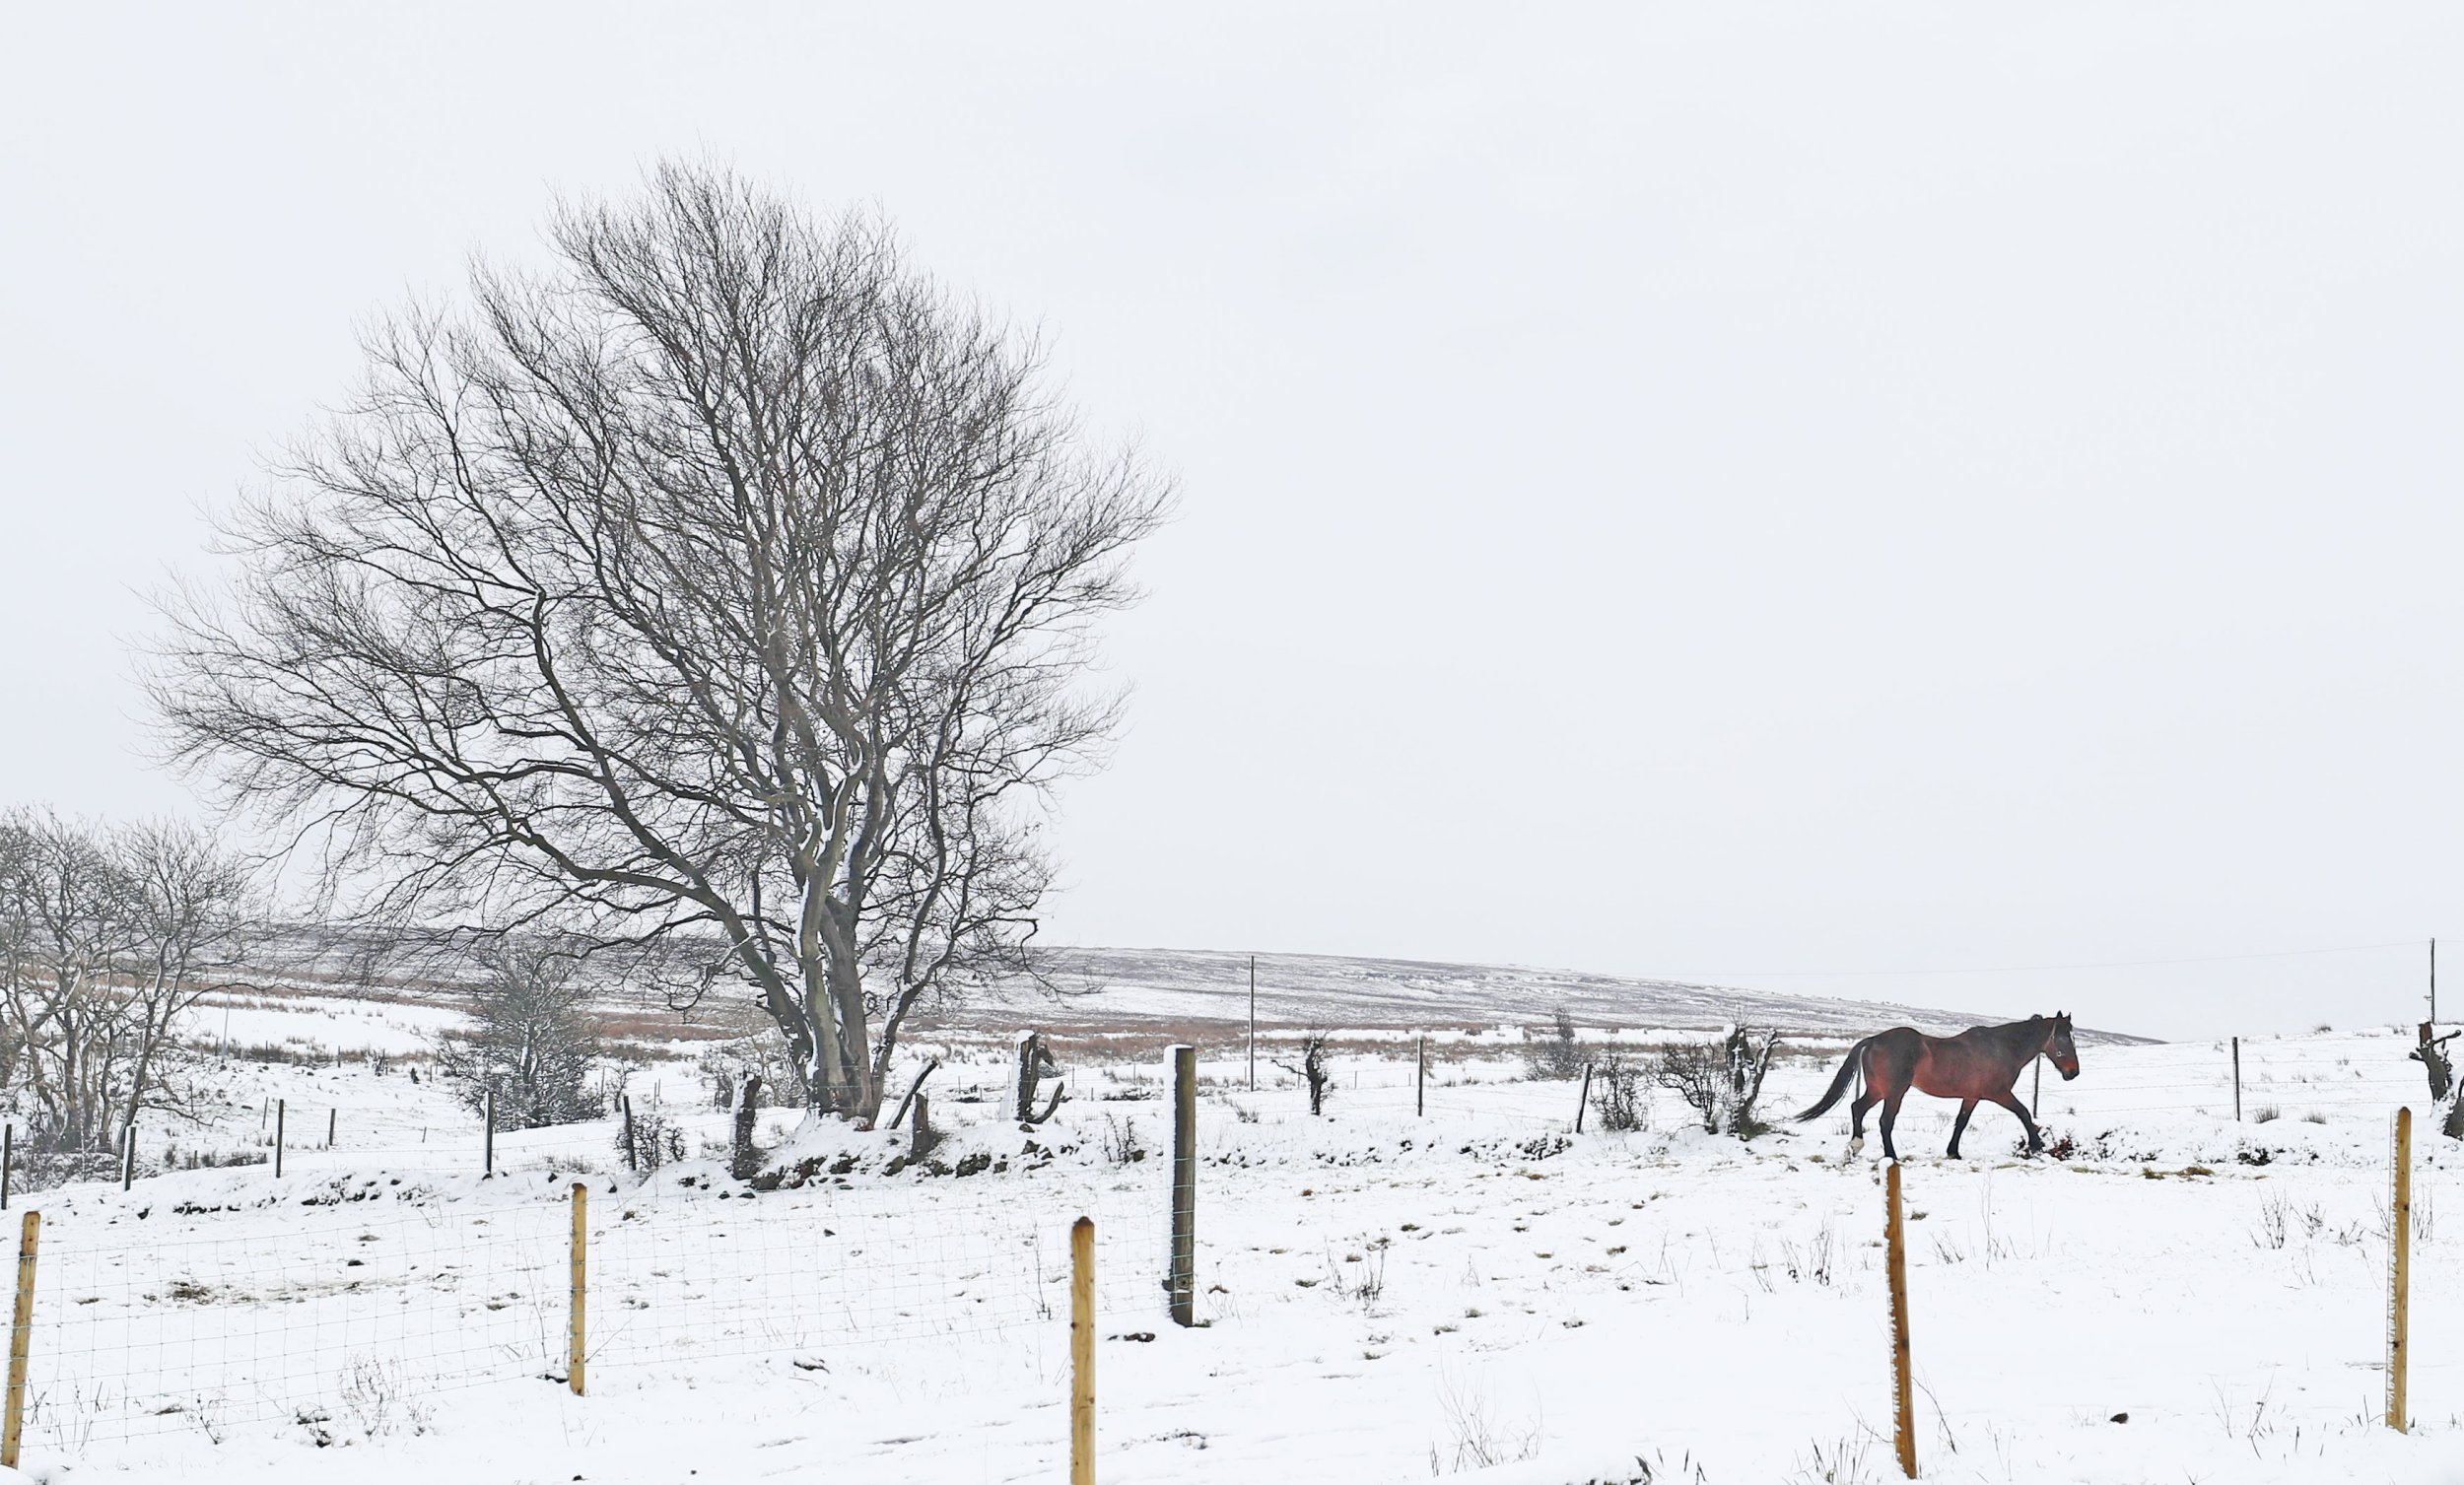 Temperatures to hit as low as -7C as UK struggles to get above freezing